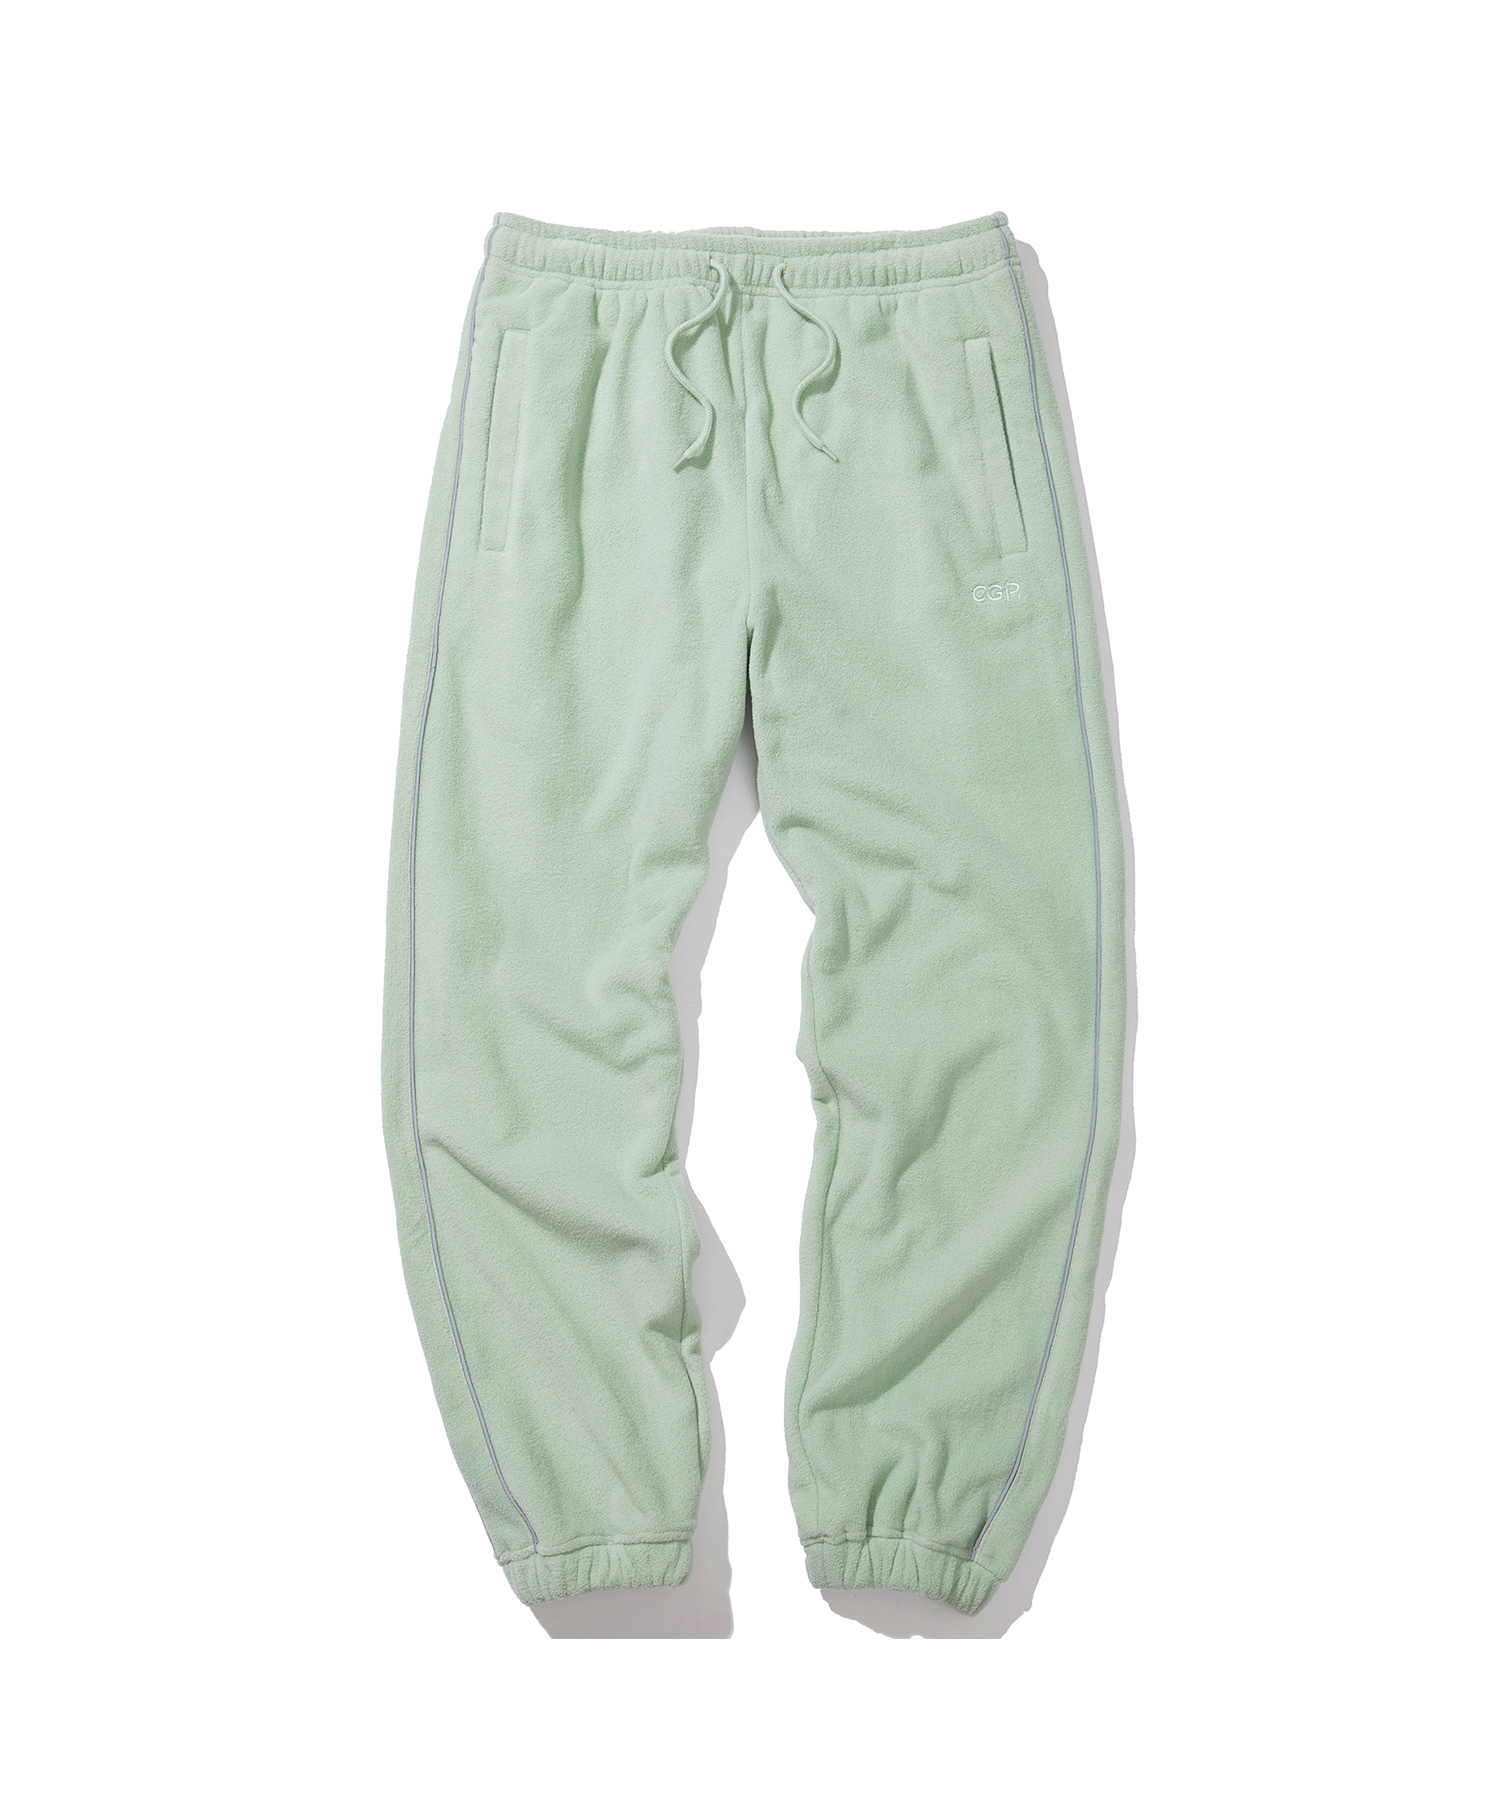 PIPING FLEECE JOGGER PANTS - MN